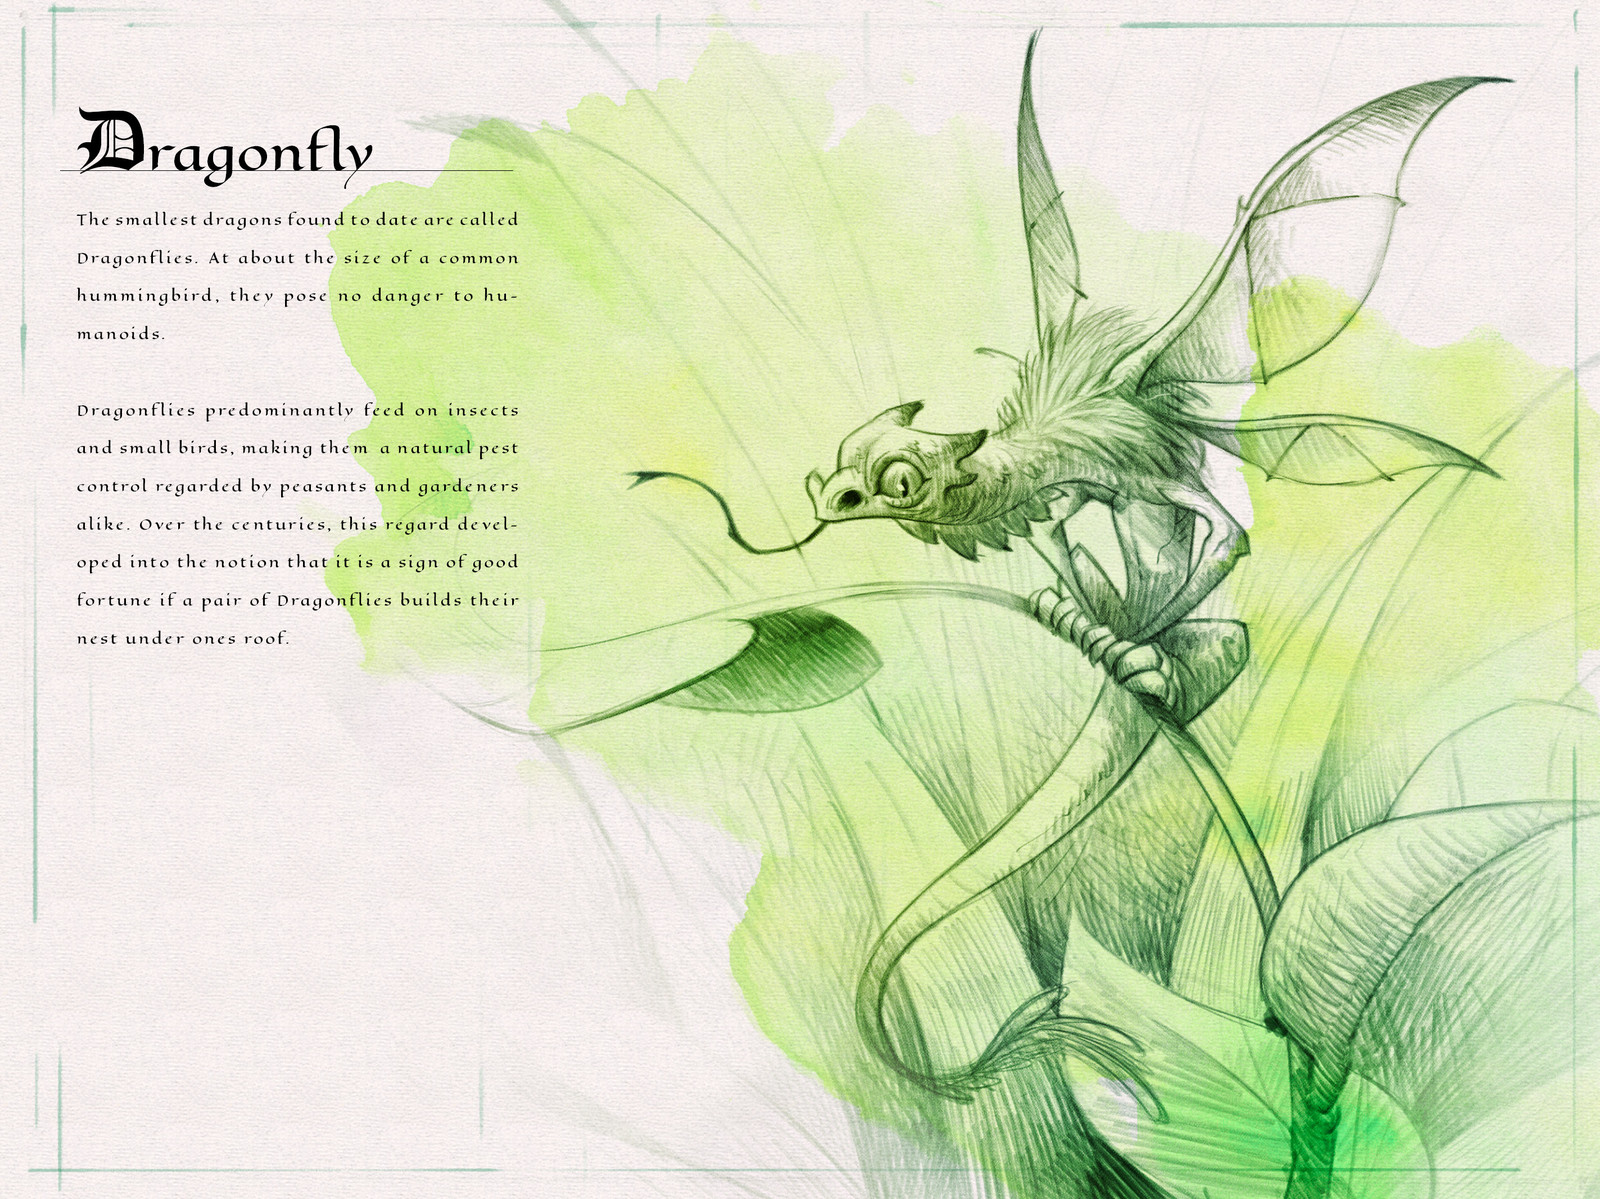 Page one of the  Dragon Compendium showing and describing the Dragonfly